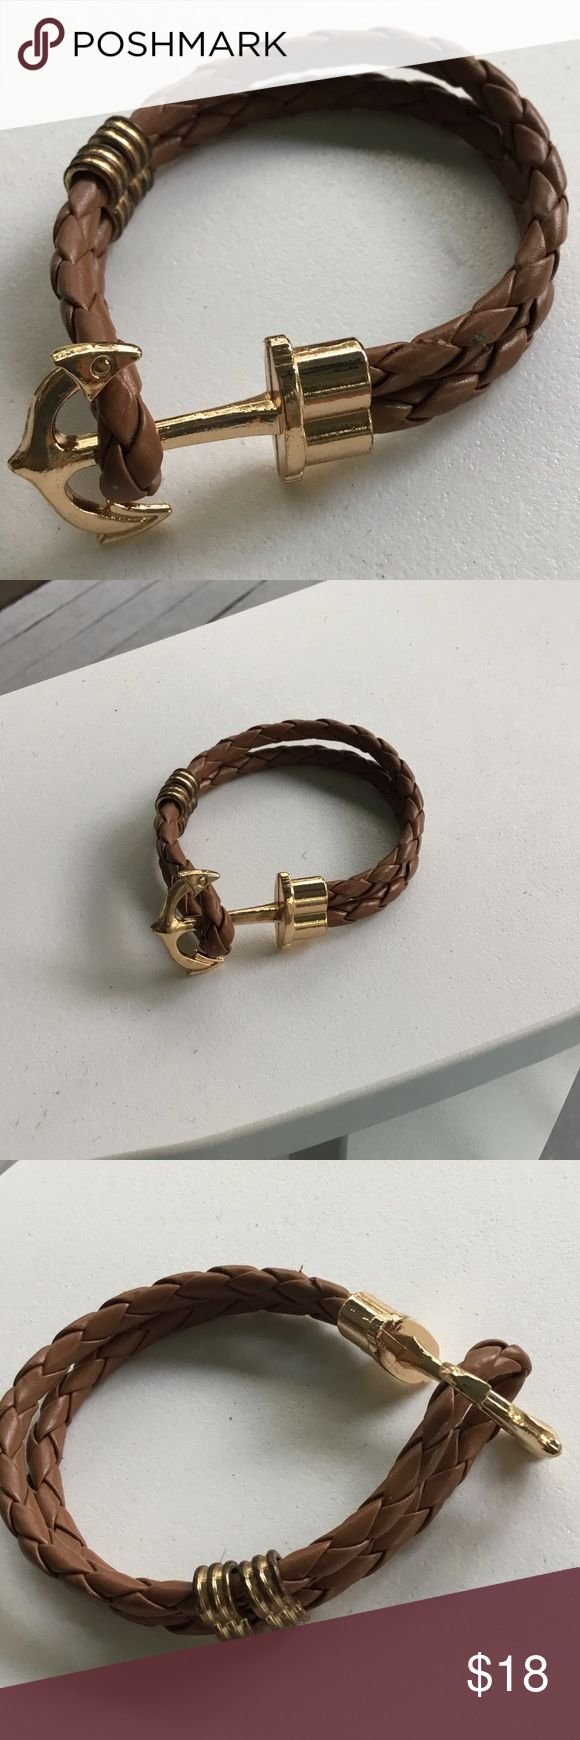 Anchor Bracelet Camel colored woven bracelet with gold anchor closure. Great for men or women. Brand new, never worn. Anchored Jewelry Bracelets